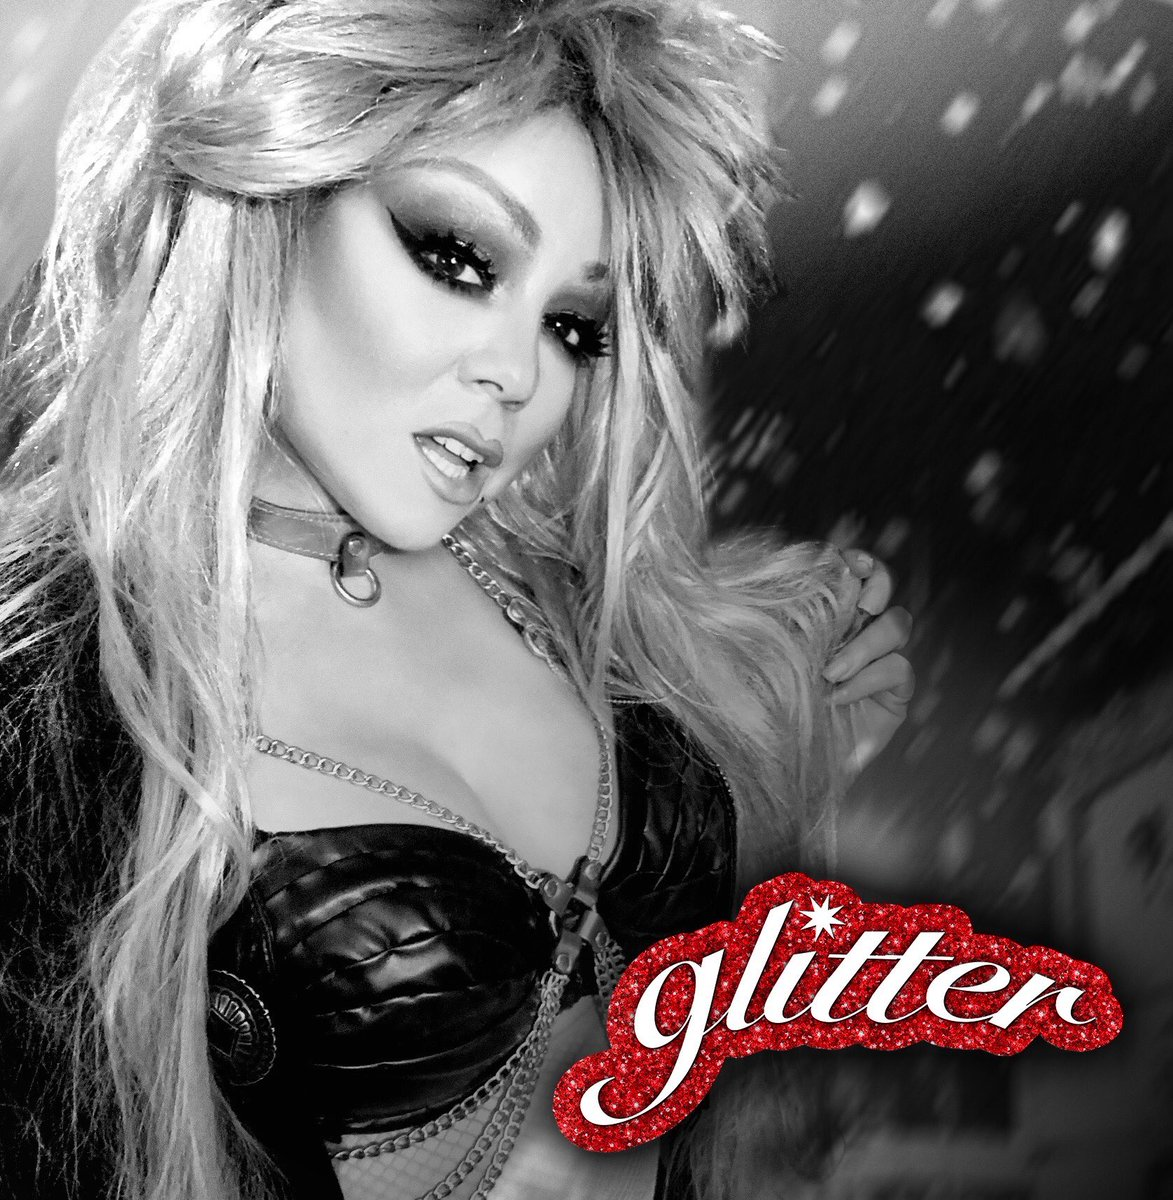 Can't believe it's been one year since the lambily got #justiceforglitter  That was a moment! I promise you I'm working hard to make it available for download and streaming <br>http://pic.twitter.com/wWc7eUVeKX